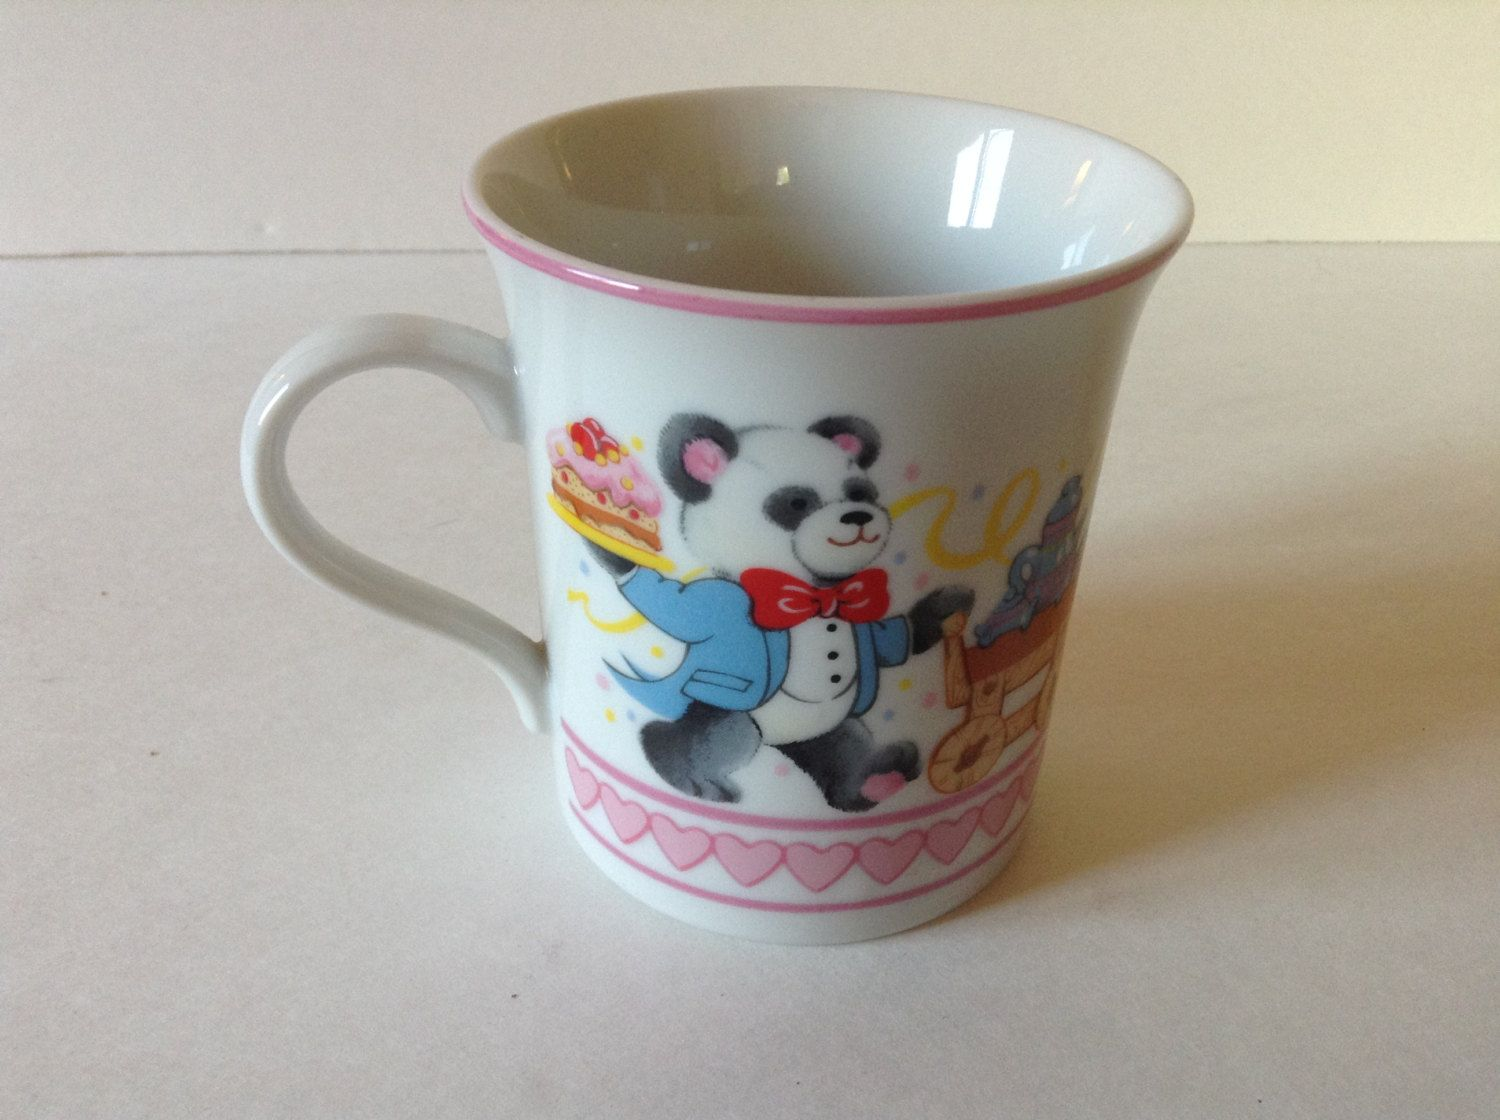 1983 Party Bears Ceramic Coffee Tea Mug Cup Wallace Berrie made in Japan Teddy Bears by afunspottoshop on Etsy